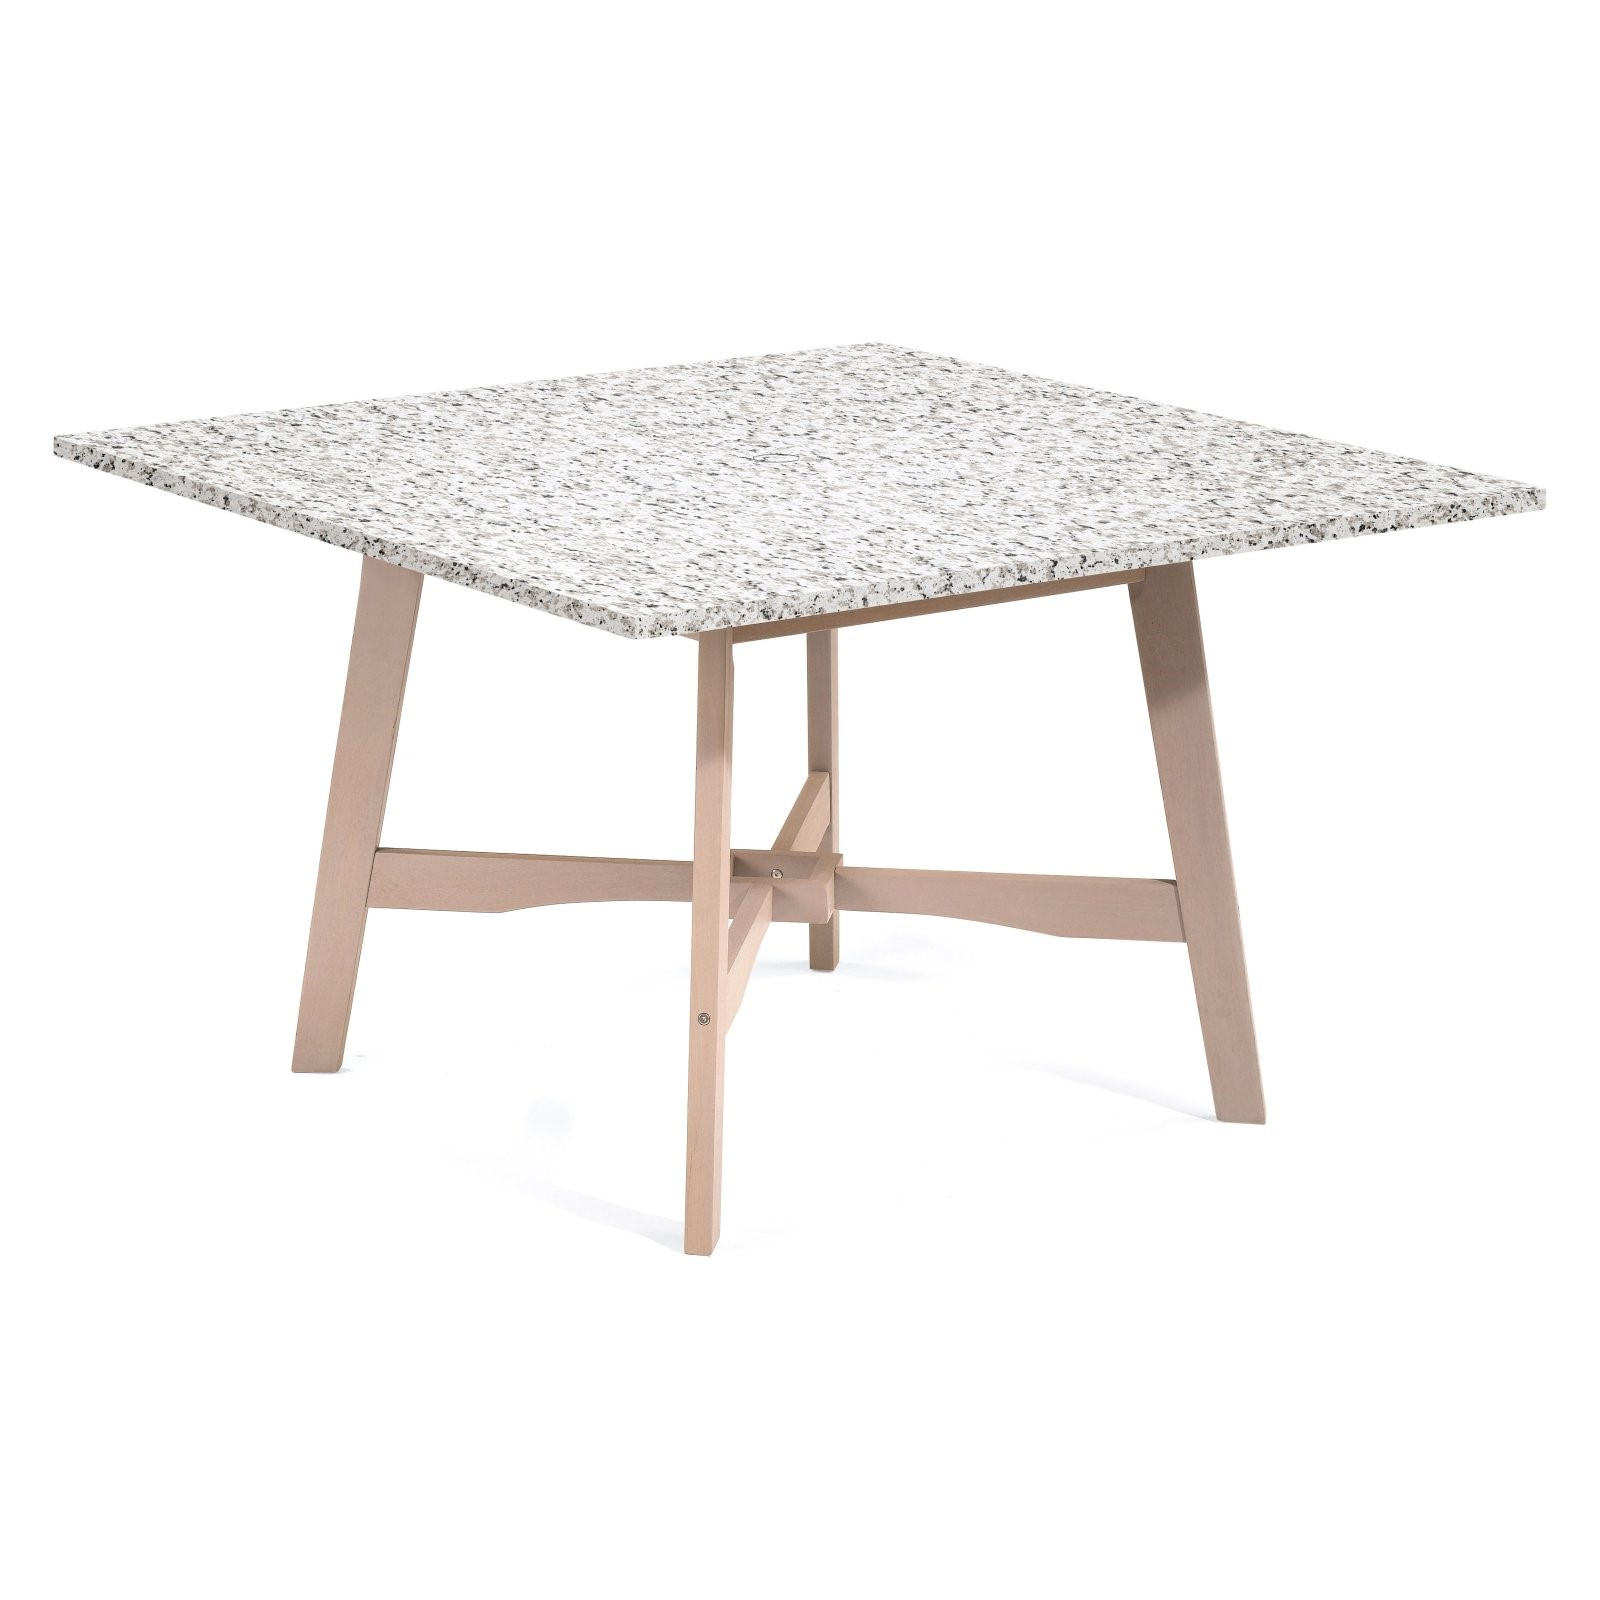 Oxford Garden Wexford 48 in. Lite-Core Patio Dining Table